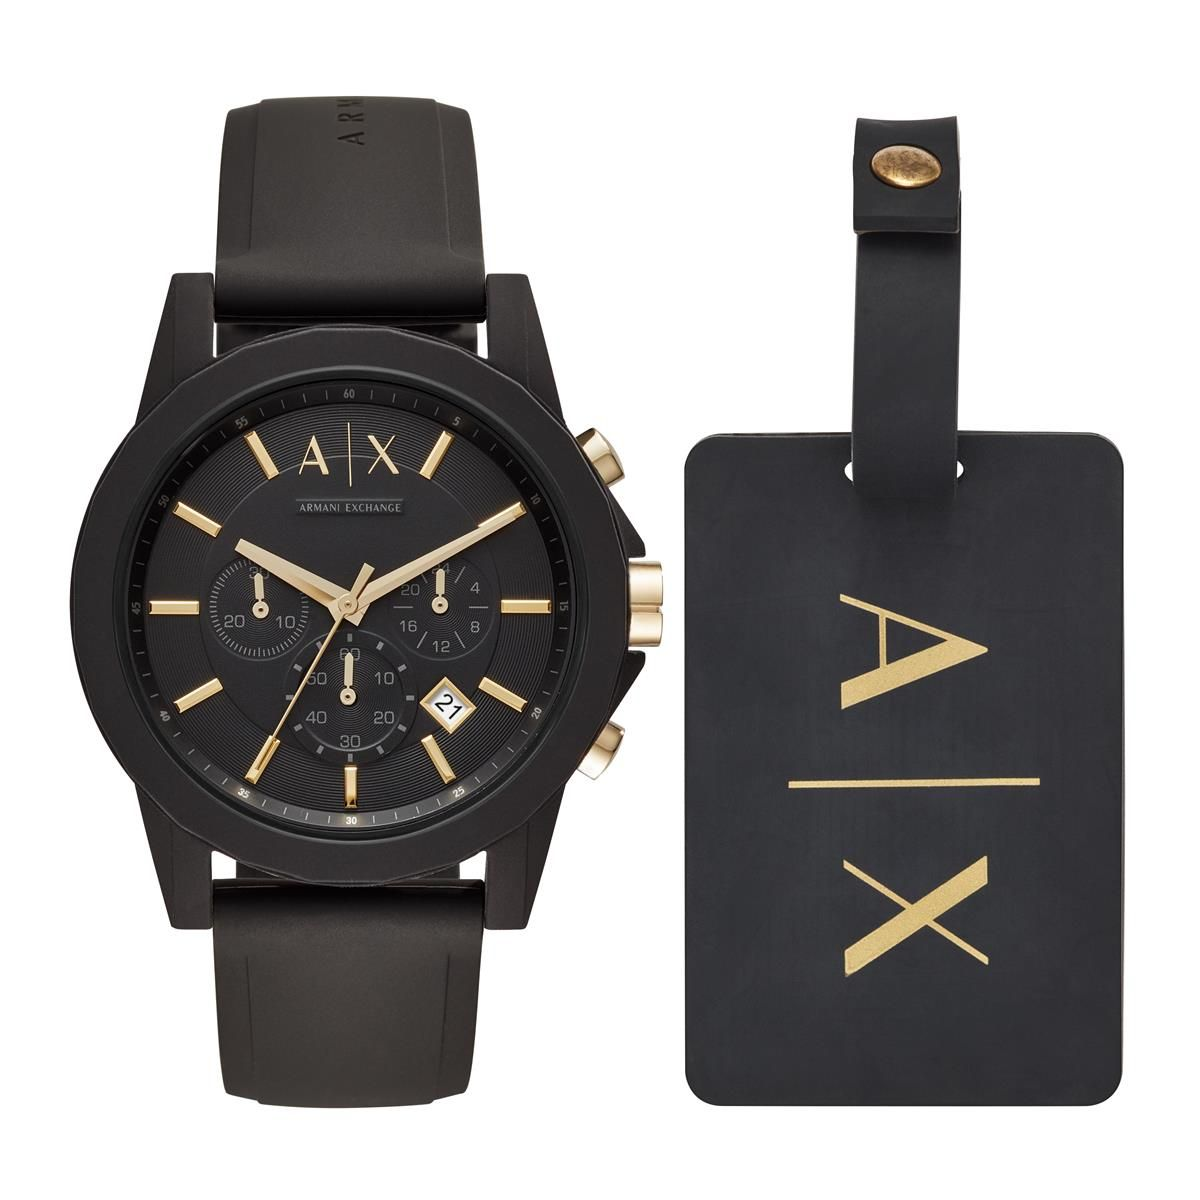 fc166f344bb Reloj Armani Exchange AX7105 Outerbanks